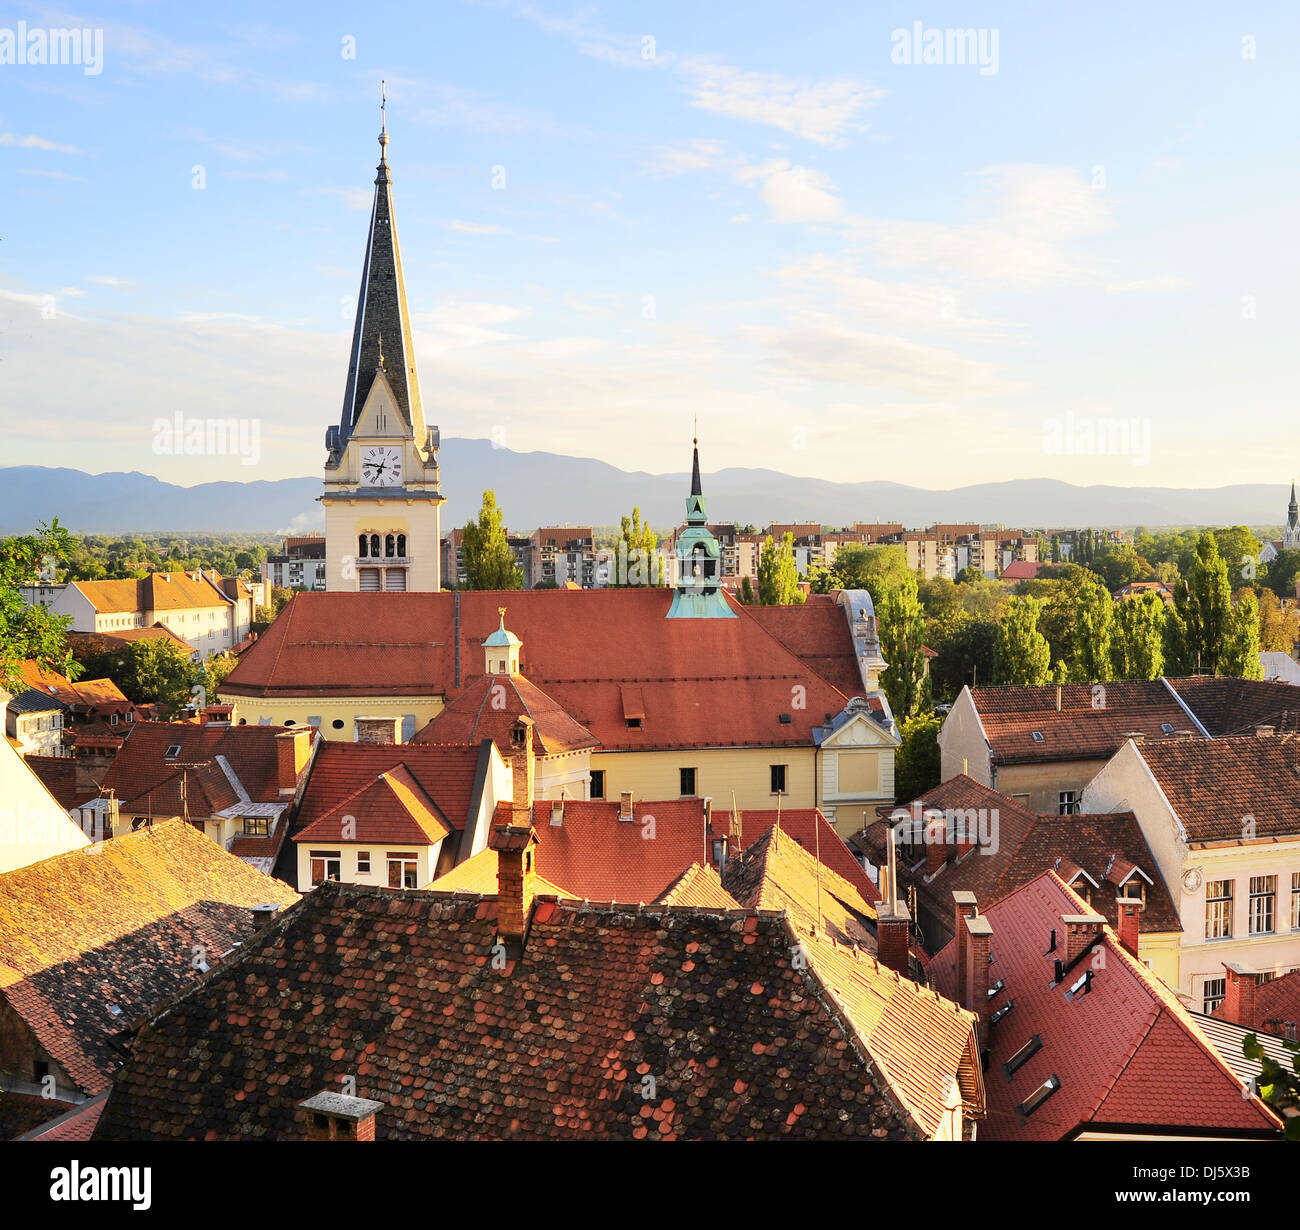 Cityscape of Ljubljana at sunset, Slovenia - Stock Image